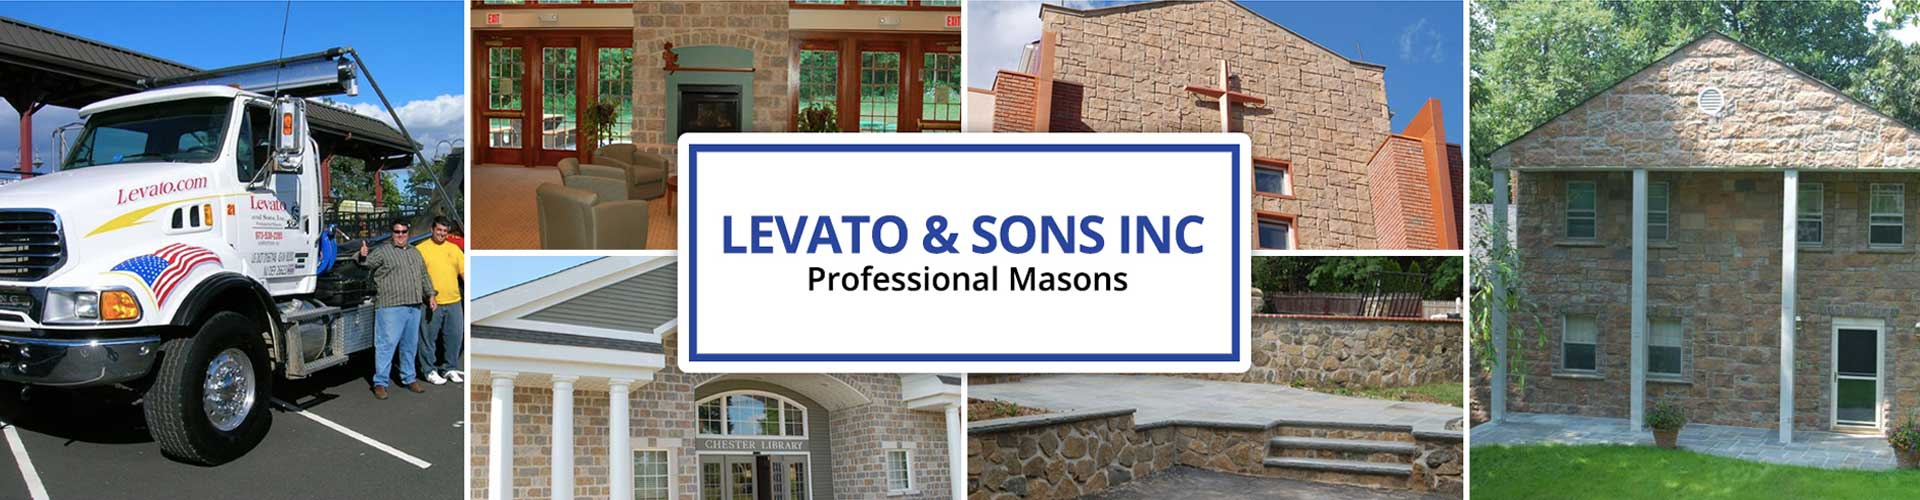 LEVATO & SONS, INC.